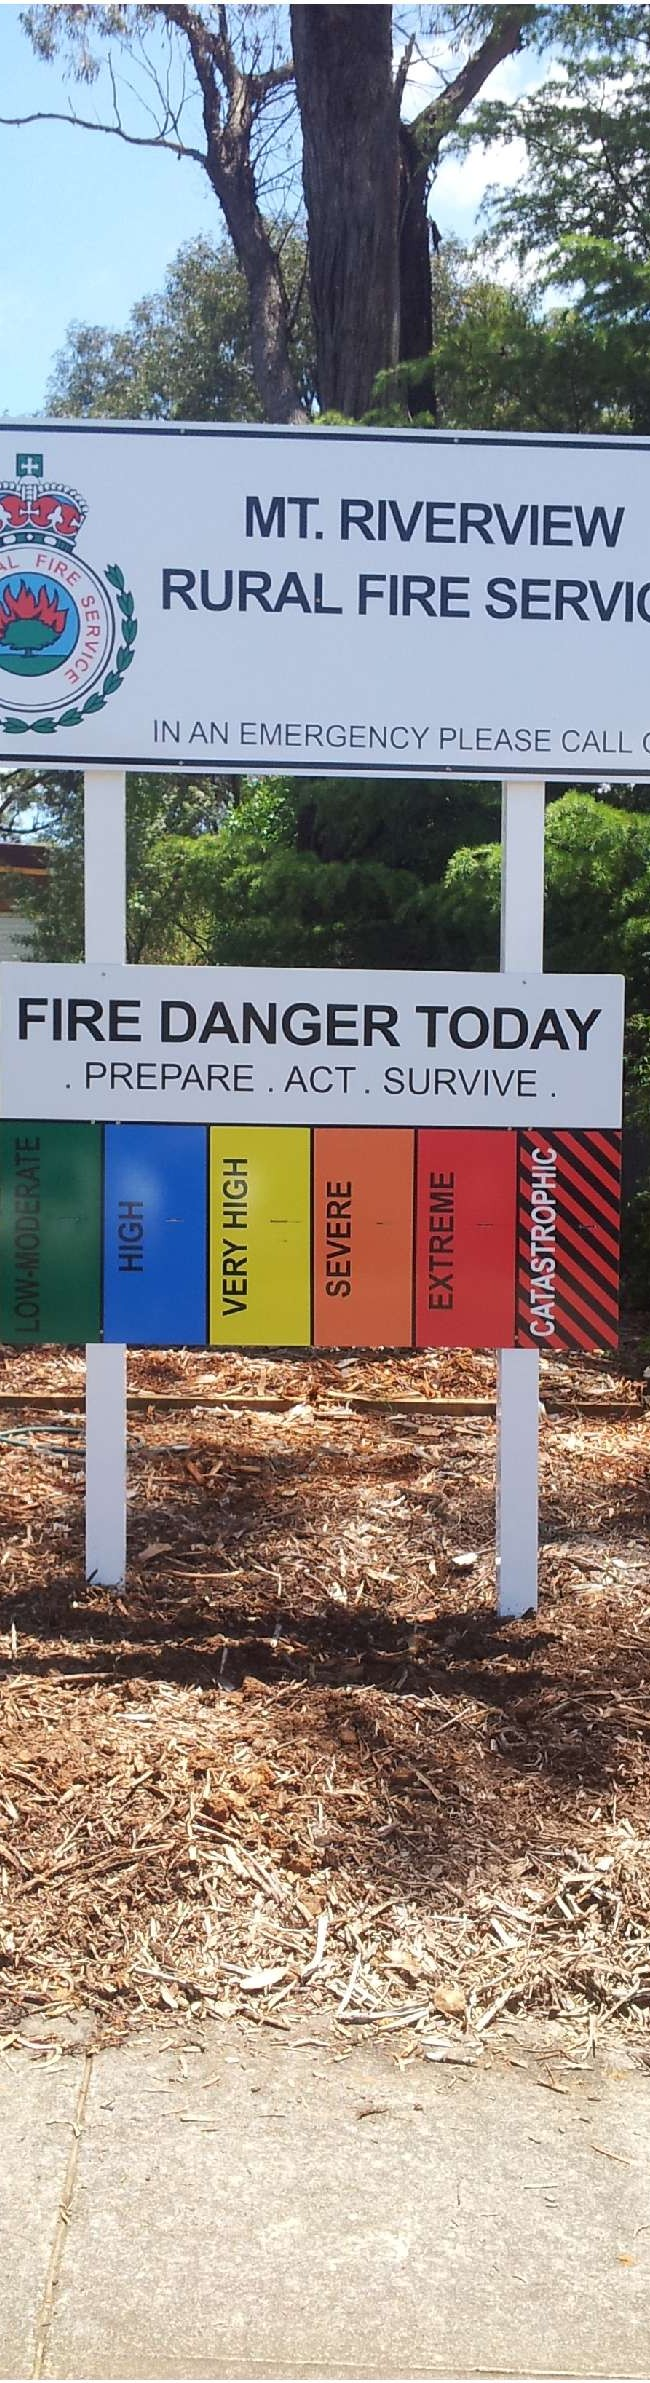 Rural Fire Service Fire Danger Indication Sign